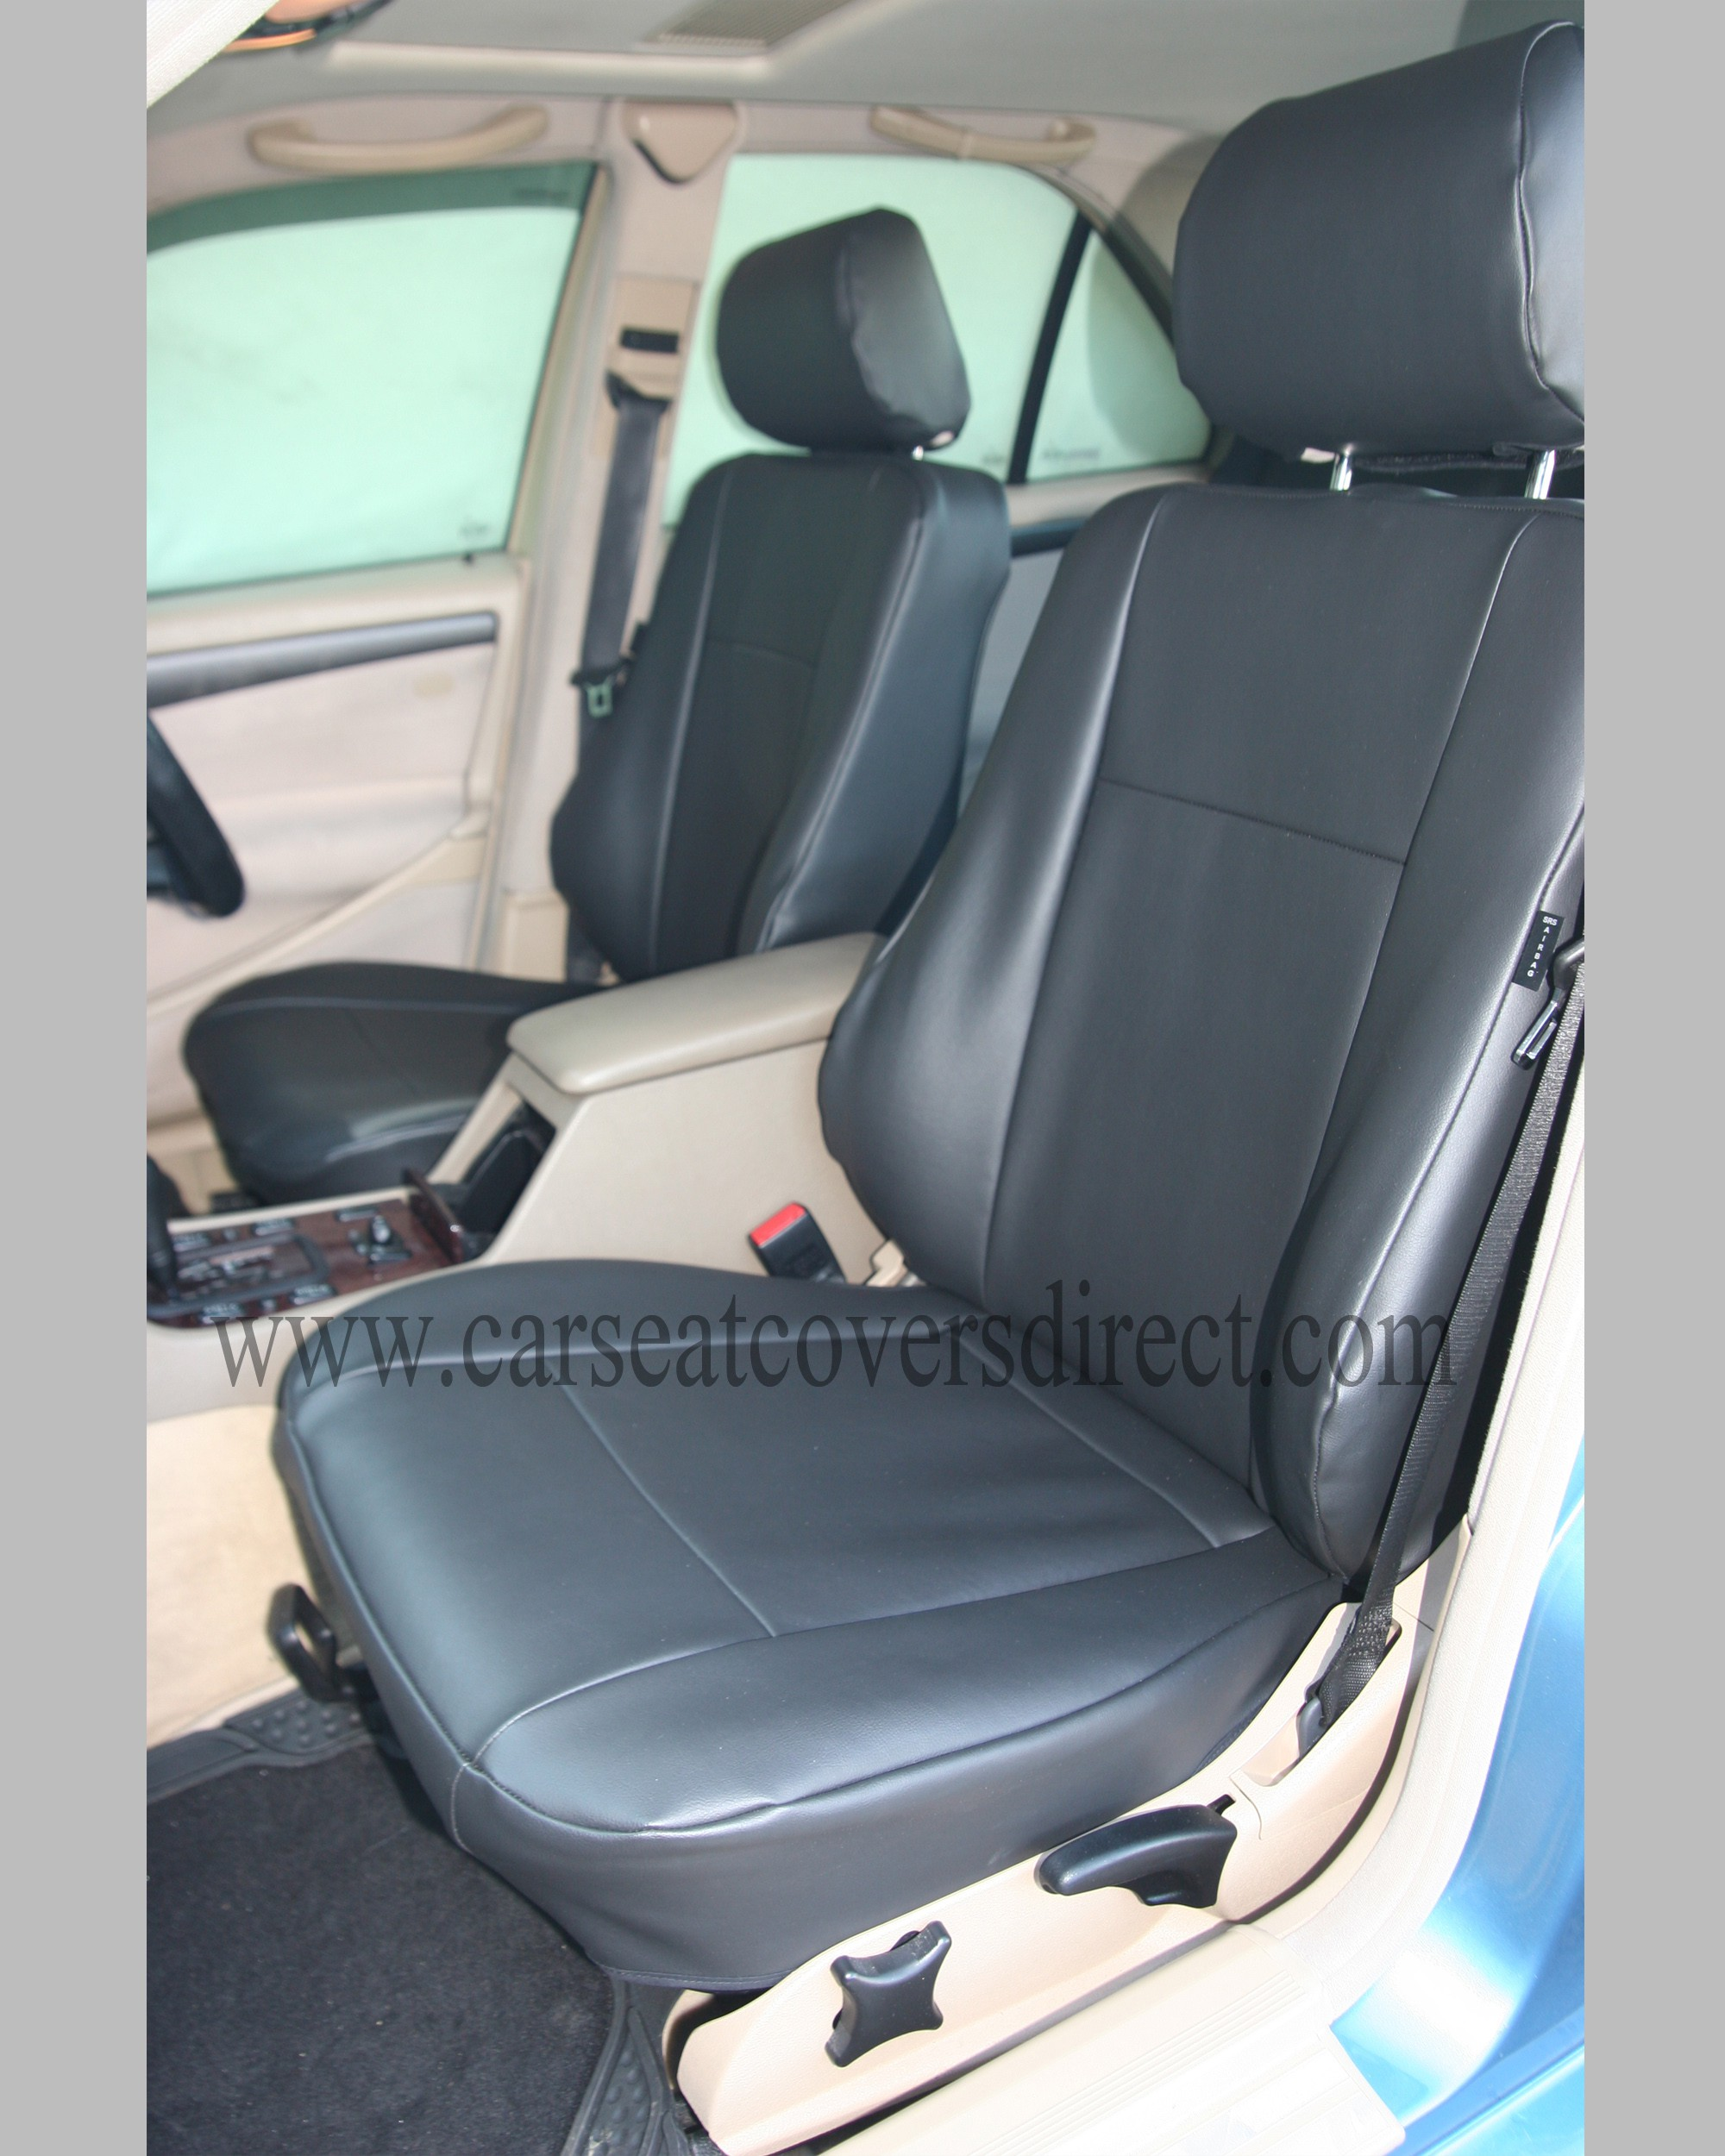 Search results for 39 mercedes 39 car seat covers direct for Seat covers mercedes benz